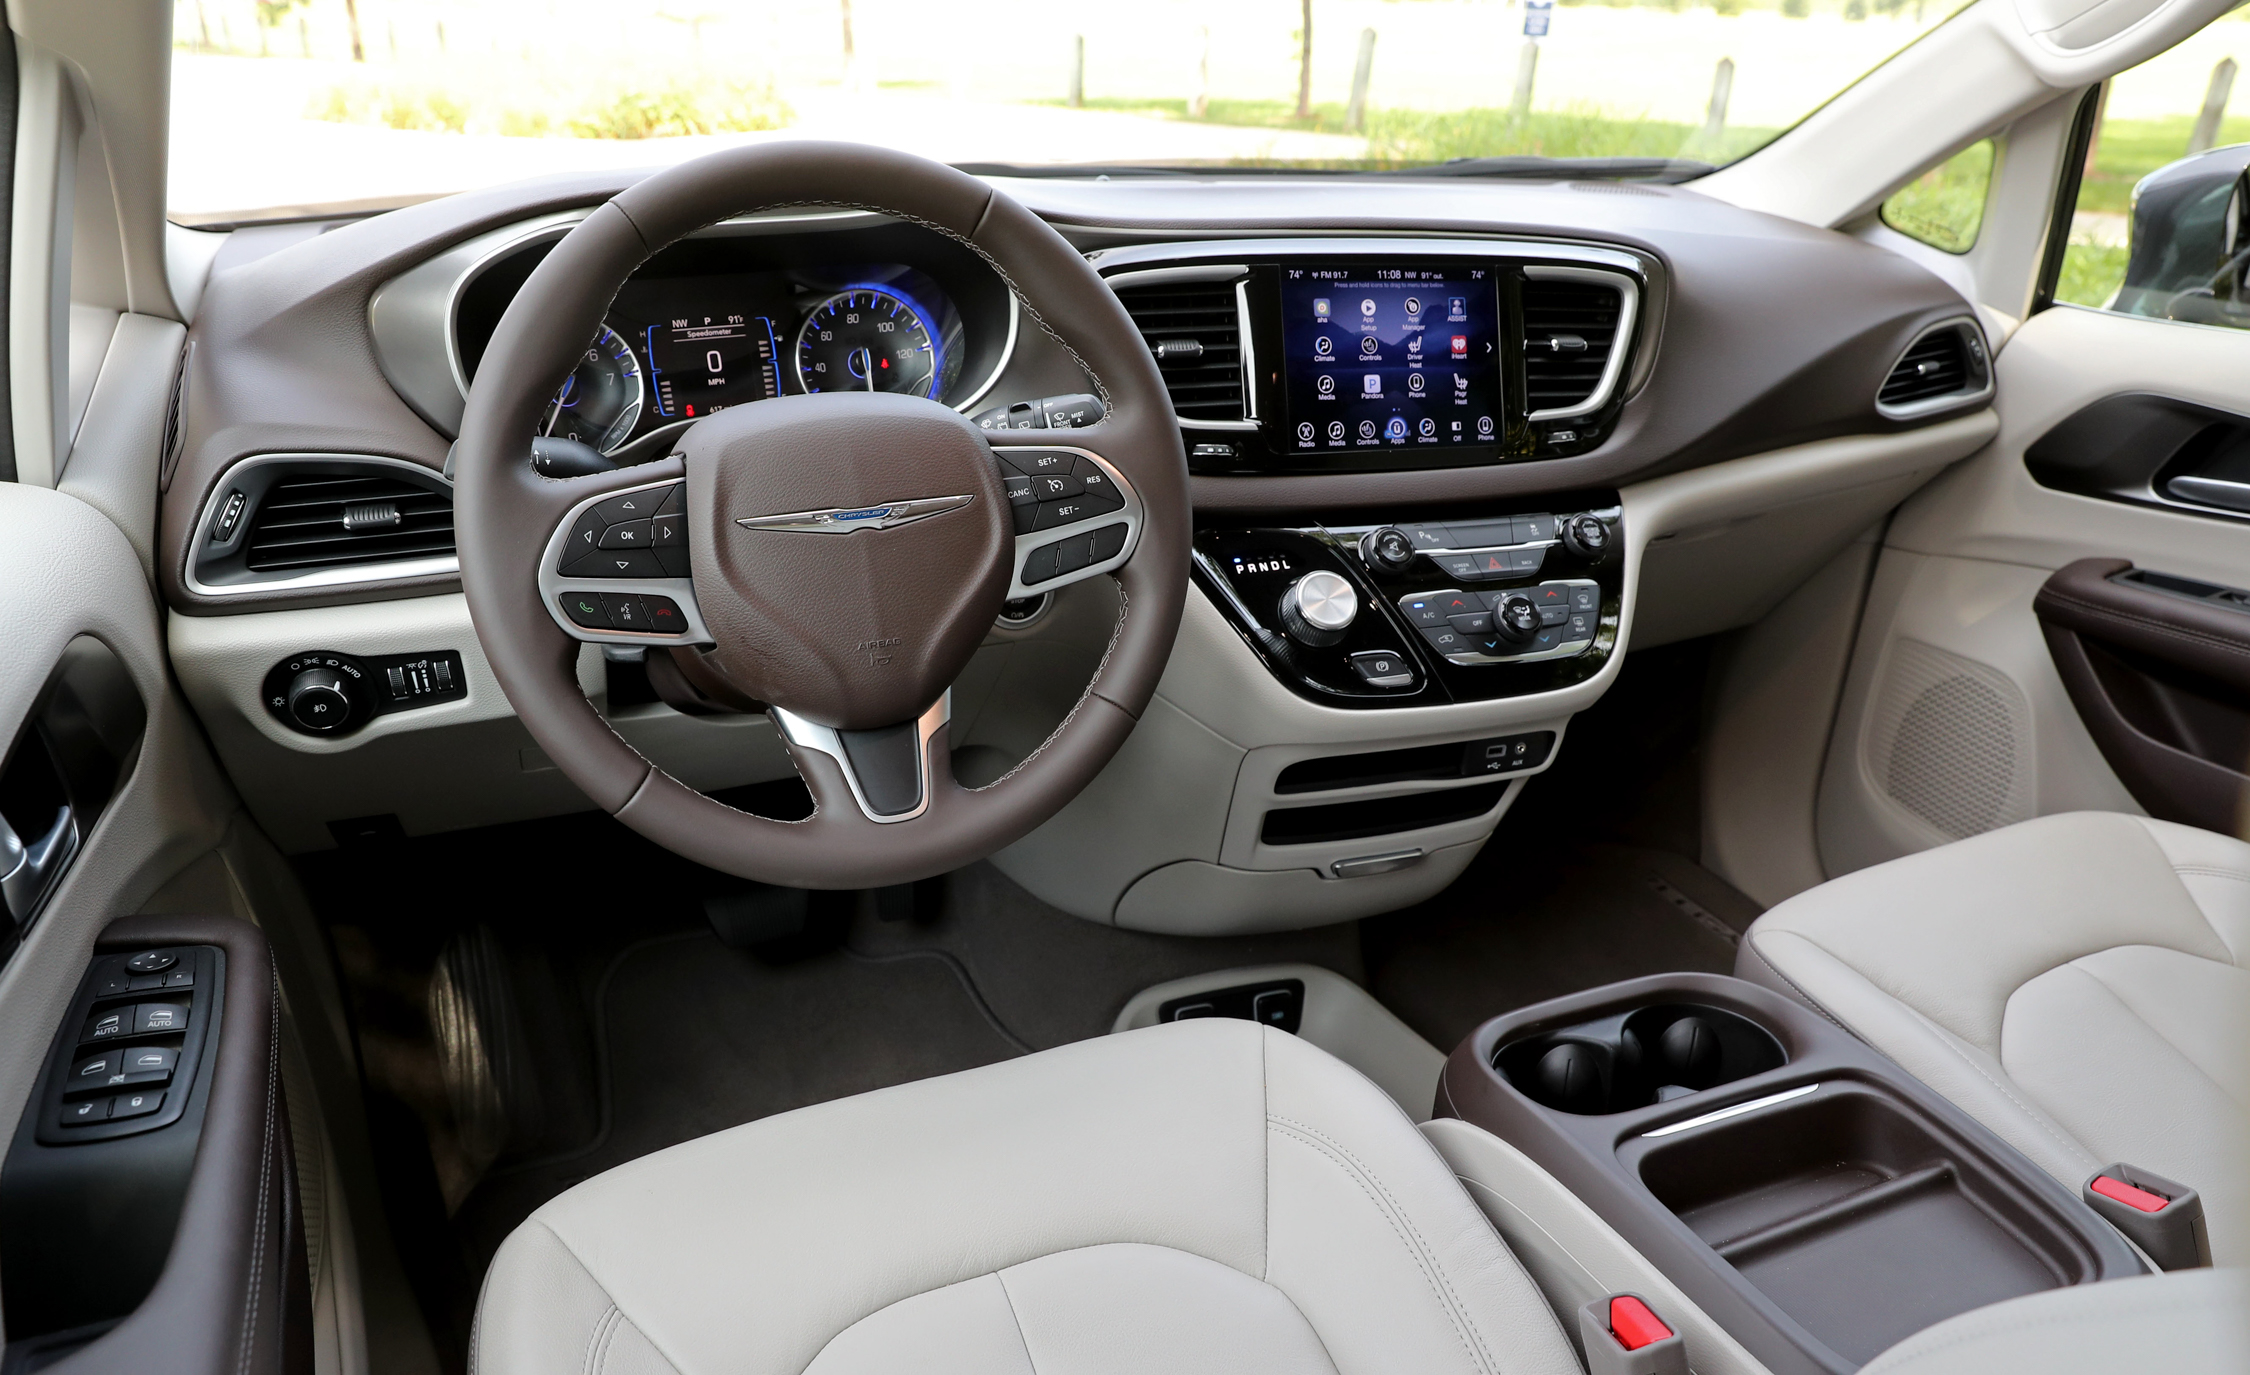 2017 chrysler pacifica cars exclusive videos and photos updates for Chrysler pacifica 2017 interior